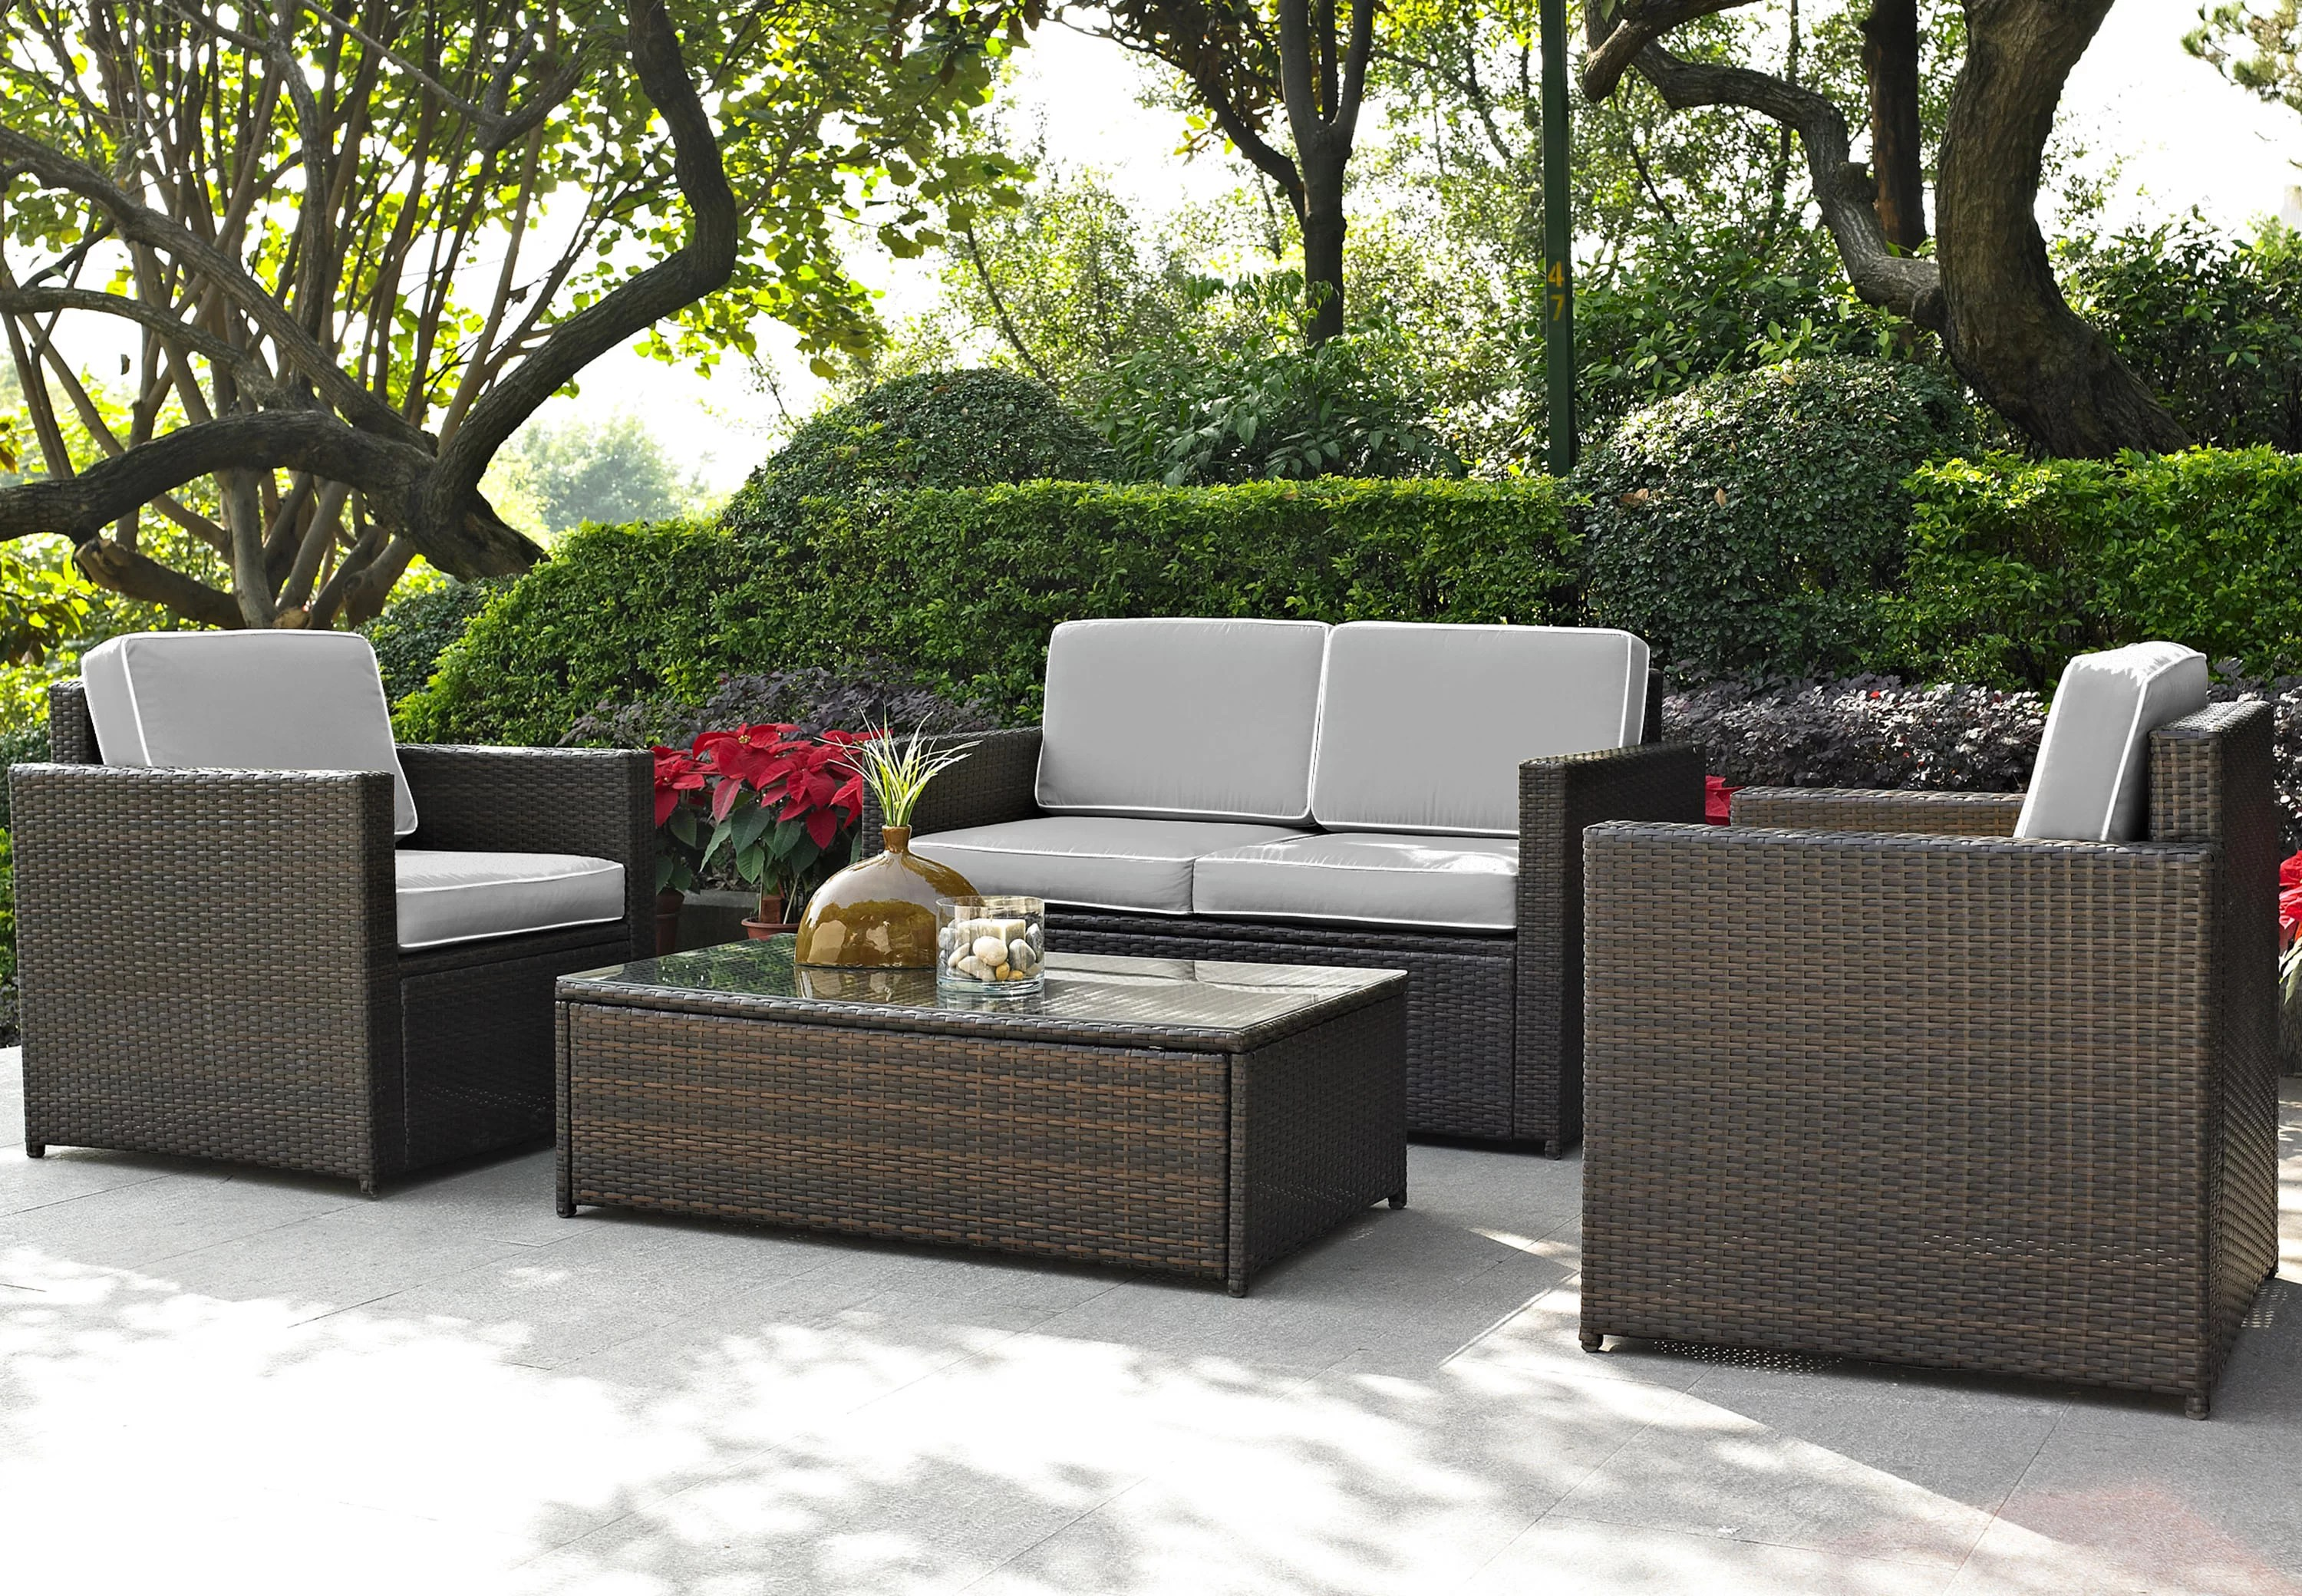 Baptist 6 Piece Rattan Sofa Set With Cushions Mercury Row Belton 4 Piece Sofa Set With Cushions